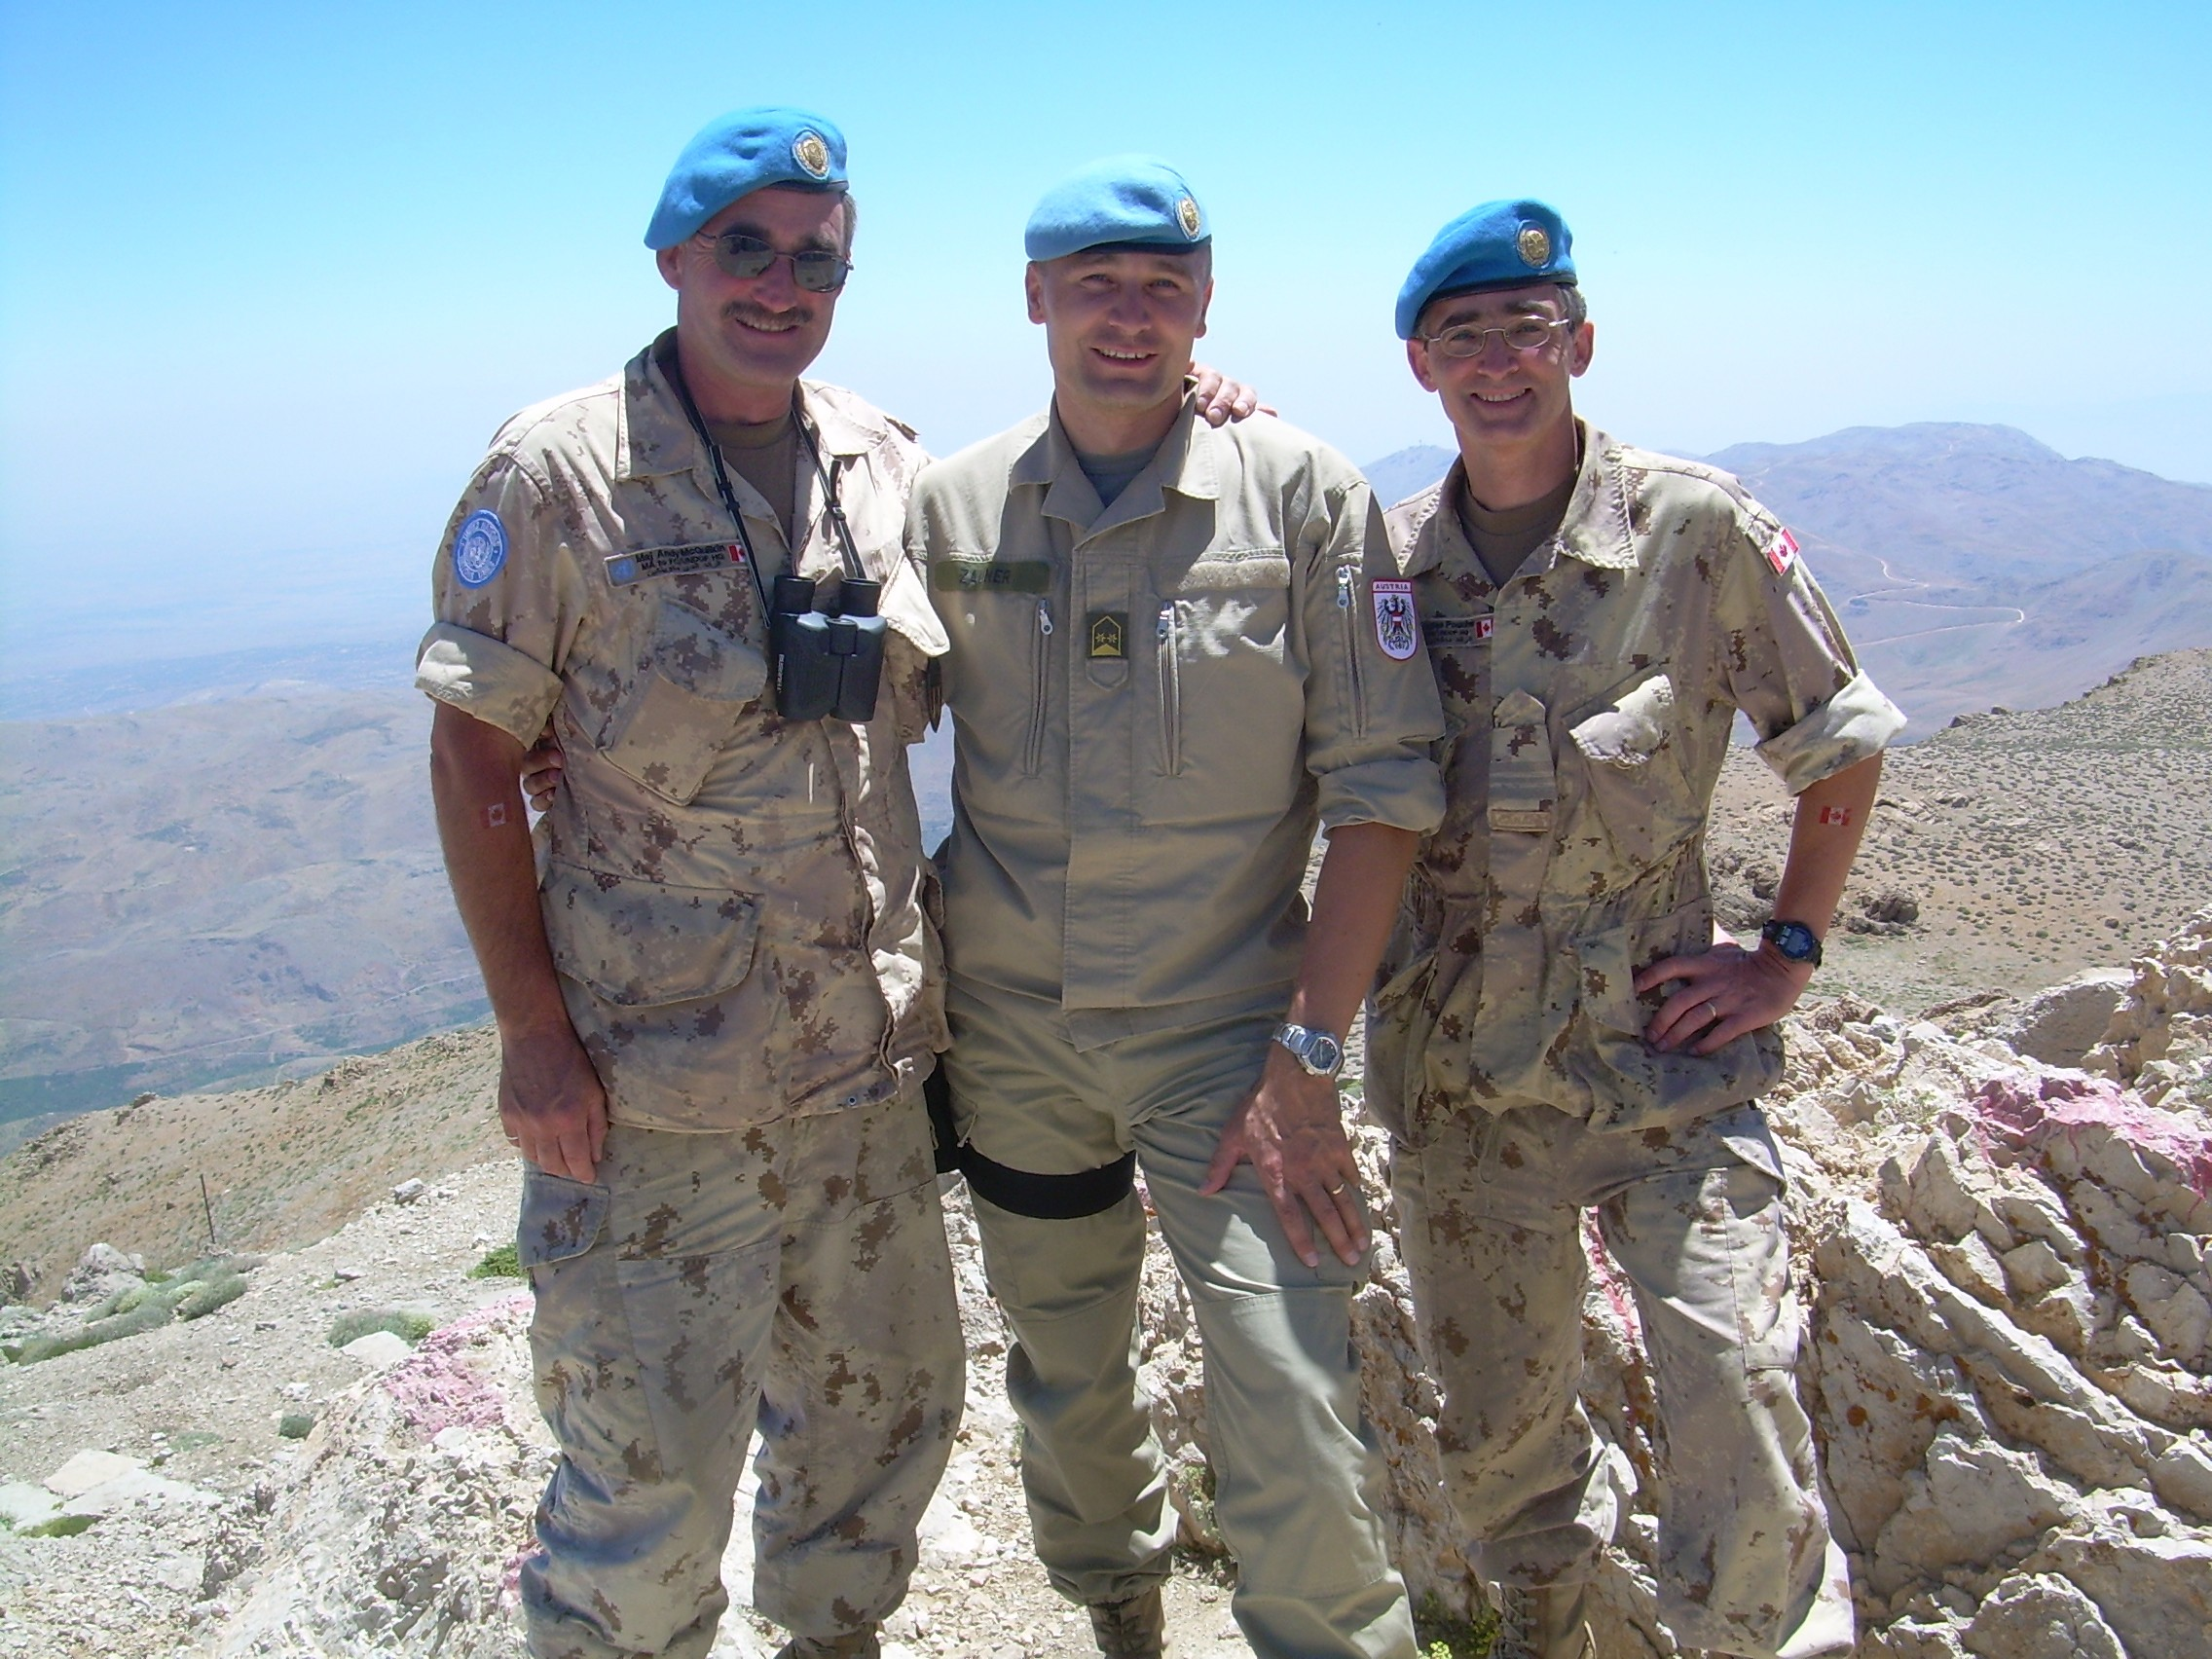 doug on mount hermon overlooking syria along with fellow canadian maj andY mcquilkin and austrian lcol rudolf zauner.  he was serving with the un DISENGAGEMENT observer force (UNDOF) hq in camp faouar as part of op gladius in 2006/2007